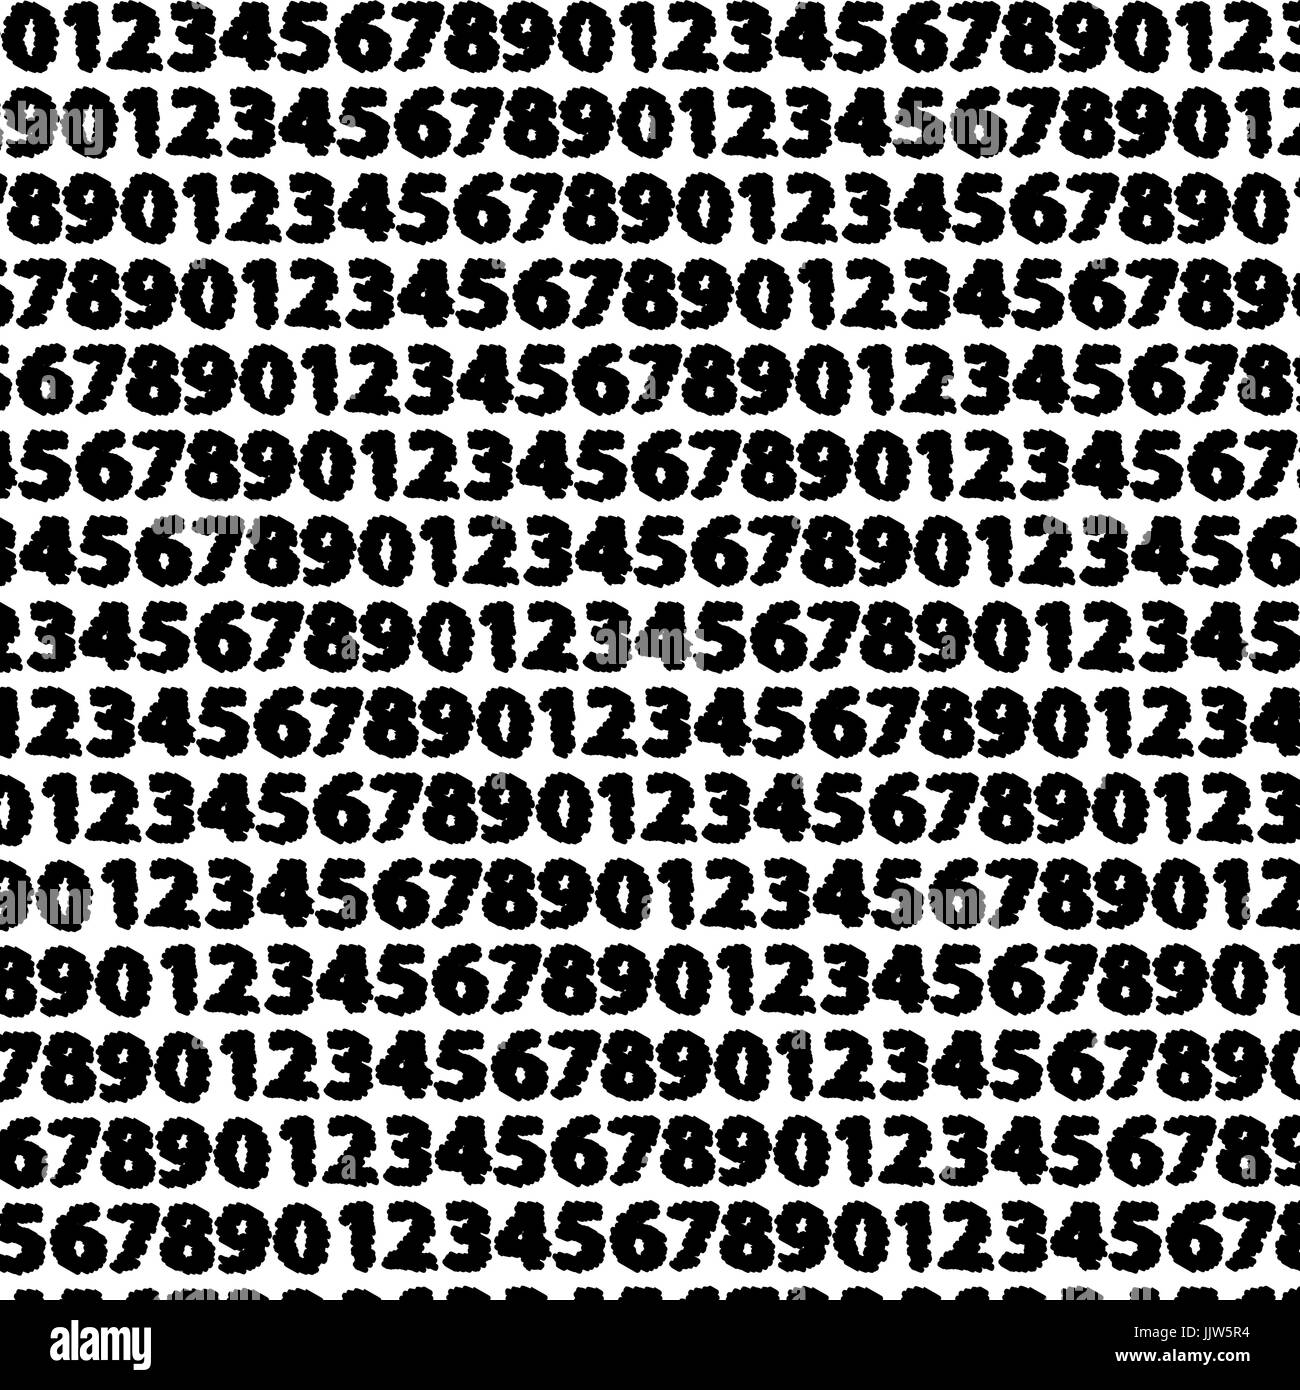 Arabic numeral vector pattern, Numbers black and white background, - Stock Image